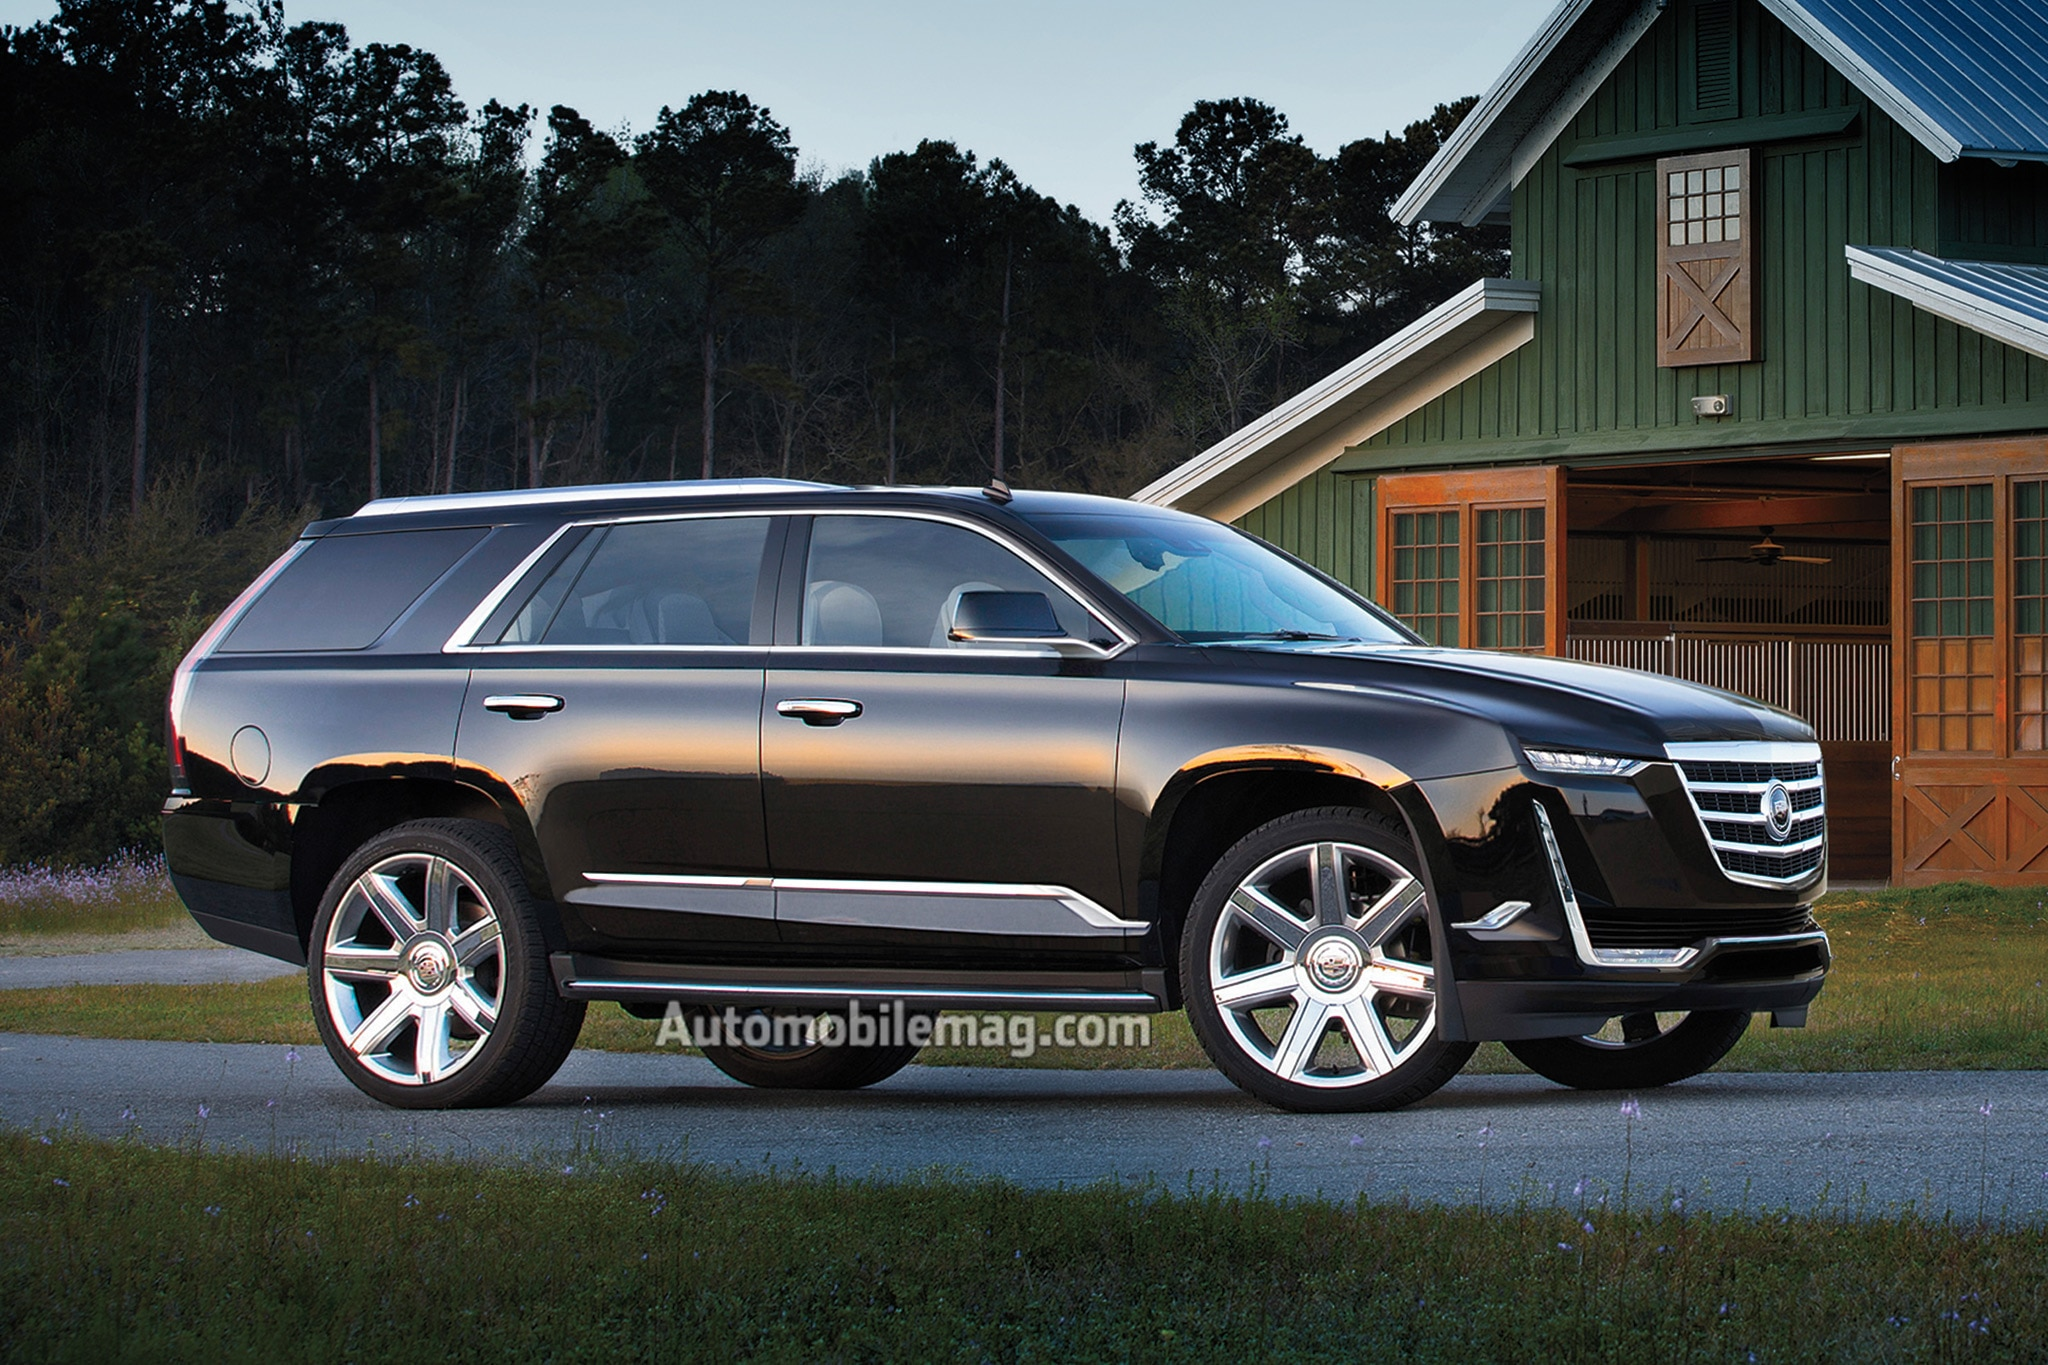 55 Best Review Price Of 2020 Cadillac Escalade First Drive with Price Of 2020 Cadillac Escalade